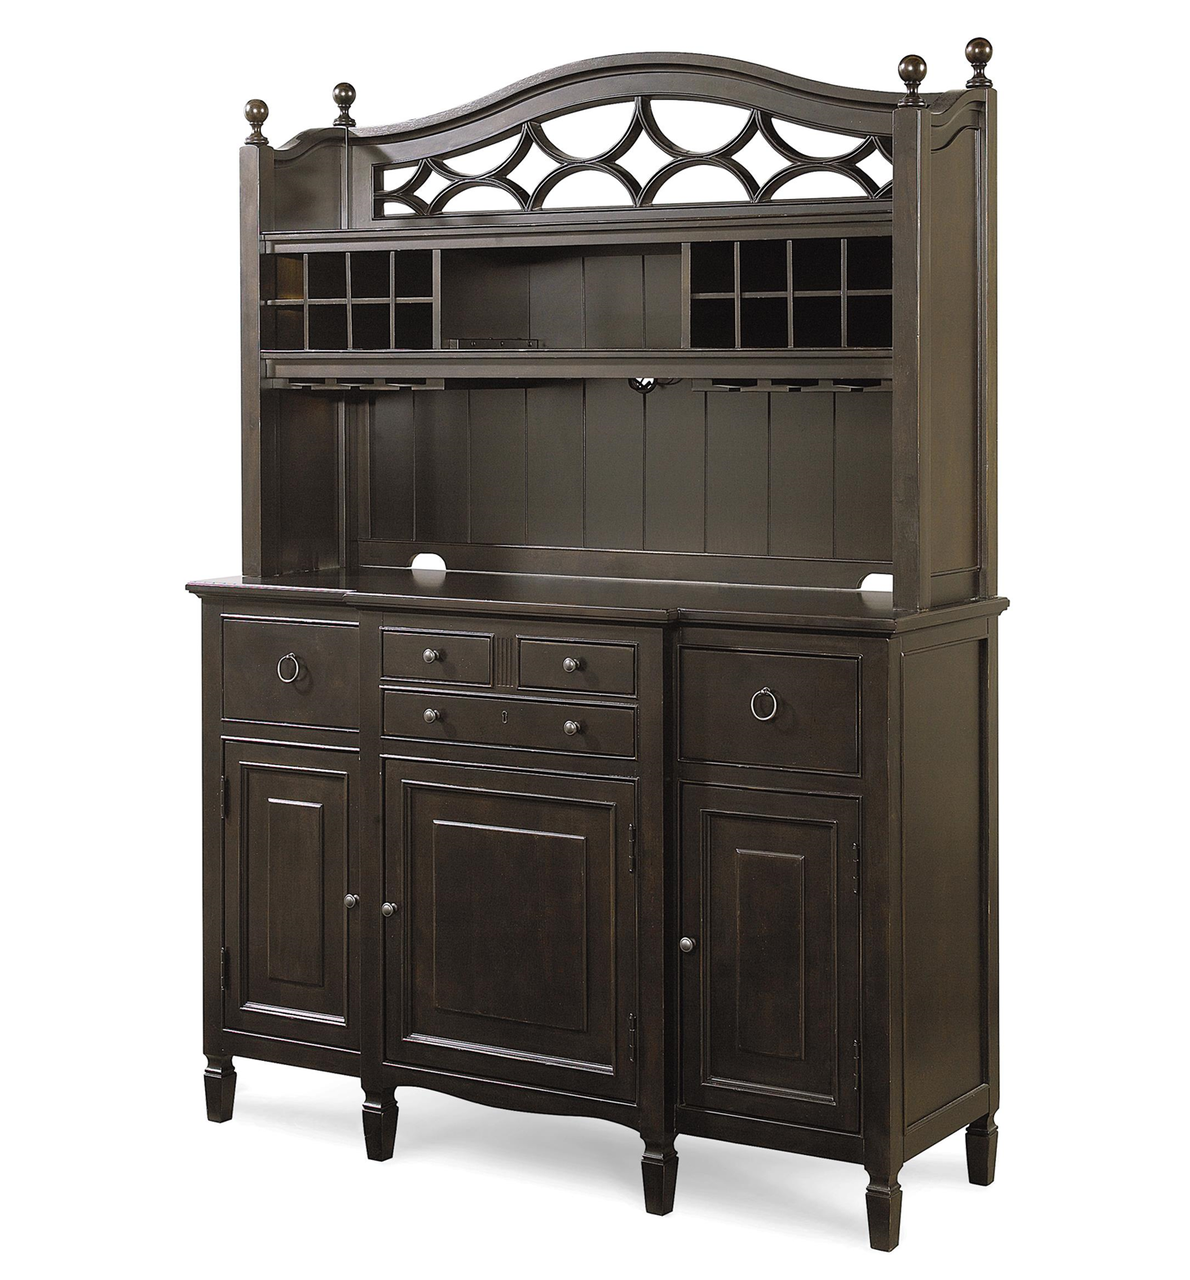 Country Chic Maple Wood Black Kitchen Buffet with Bar Hutch1  86220.1453783064.1280.1280